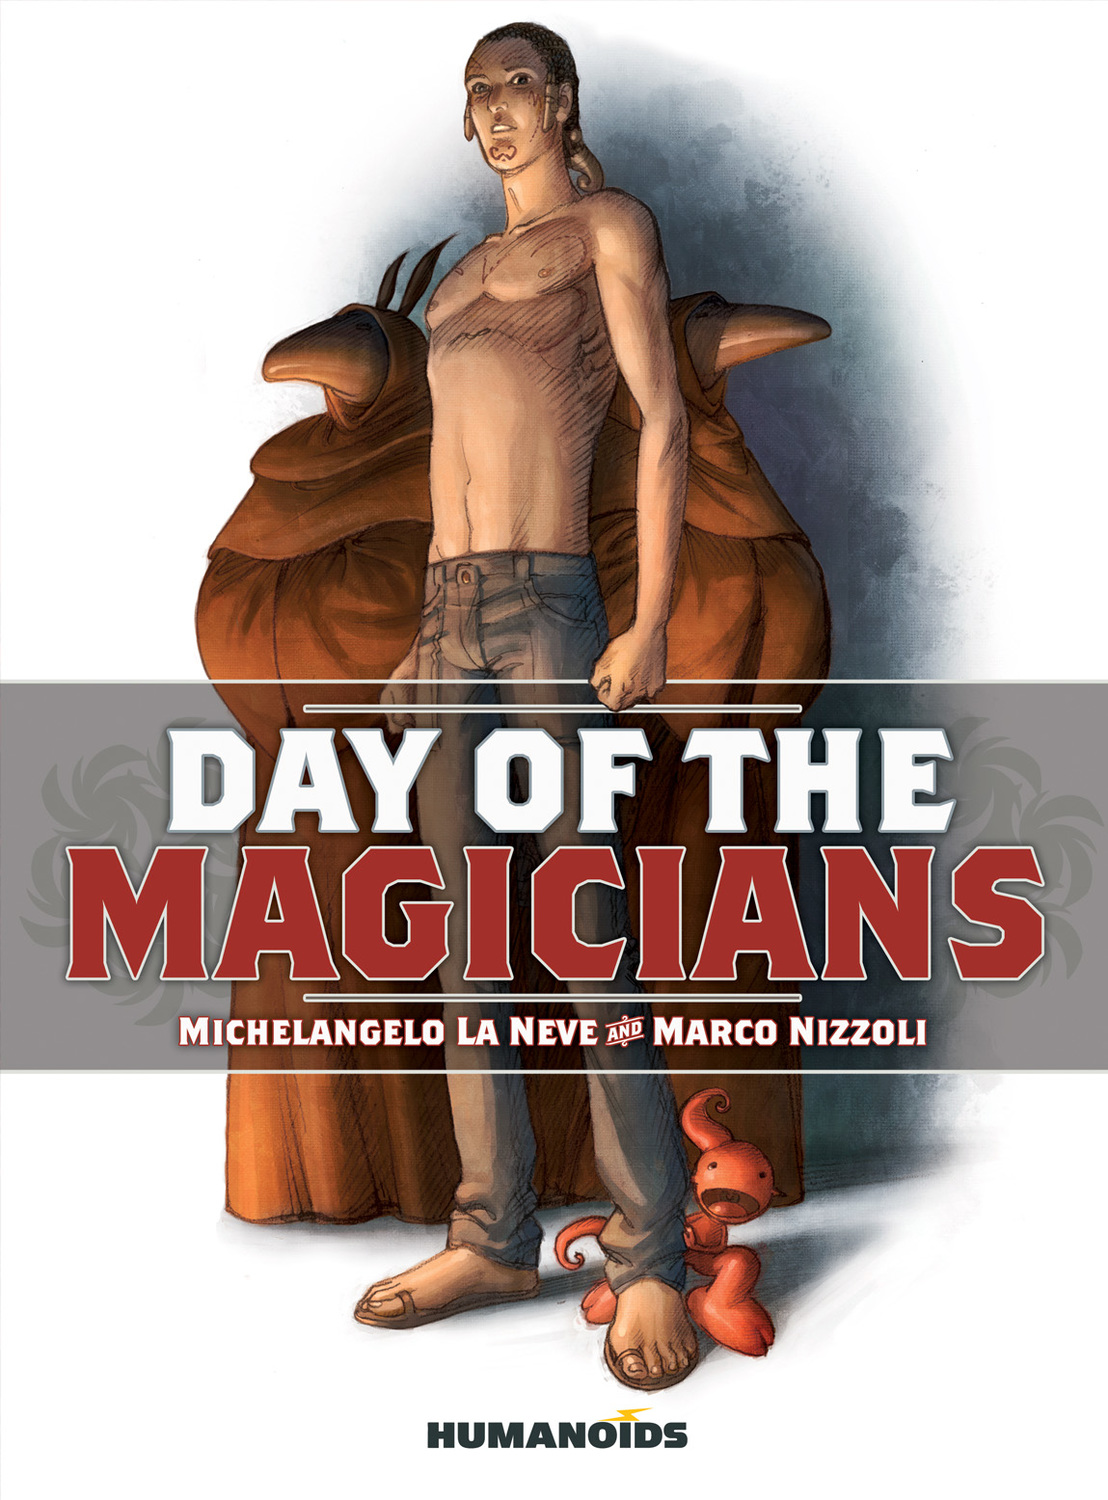 Day of the Magicians no vulgar hotel – the desire and pursuit of venice